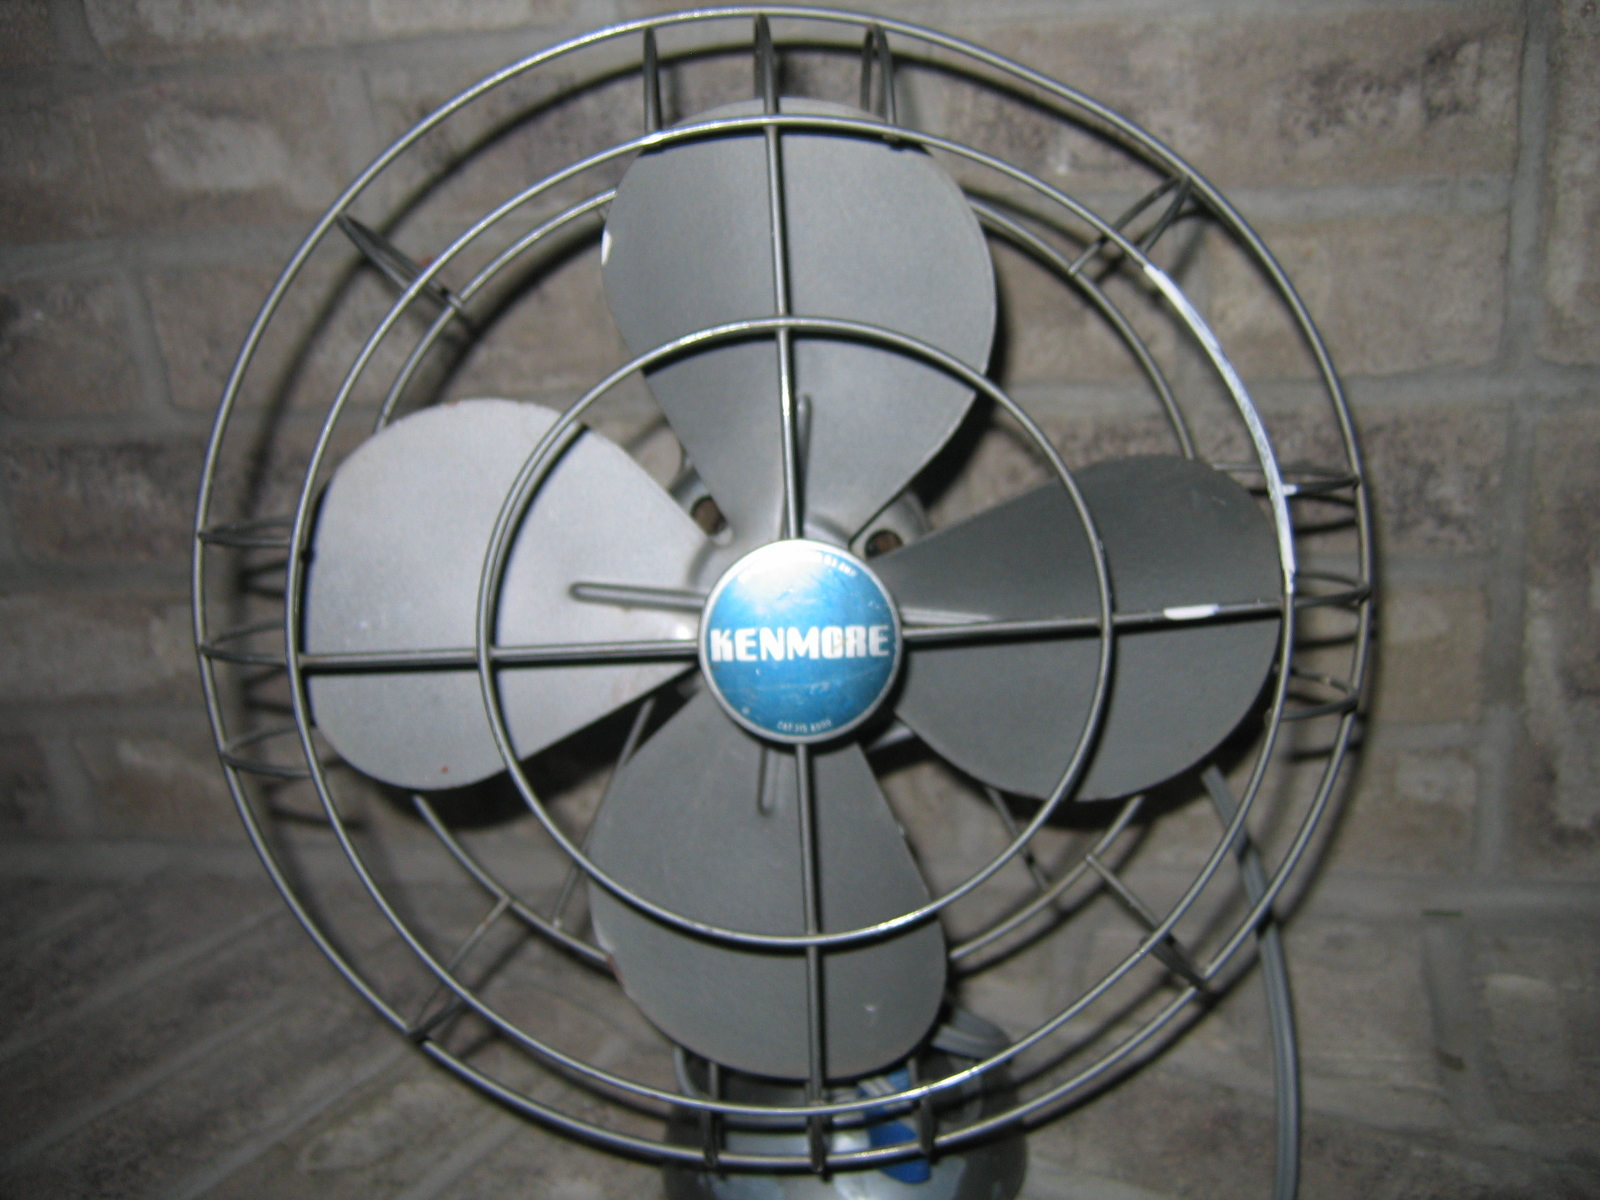 Vintage Kenmore Electric Rotating Fan For Sale Antiques.com  #3C718F